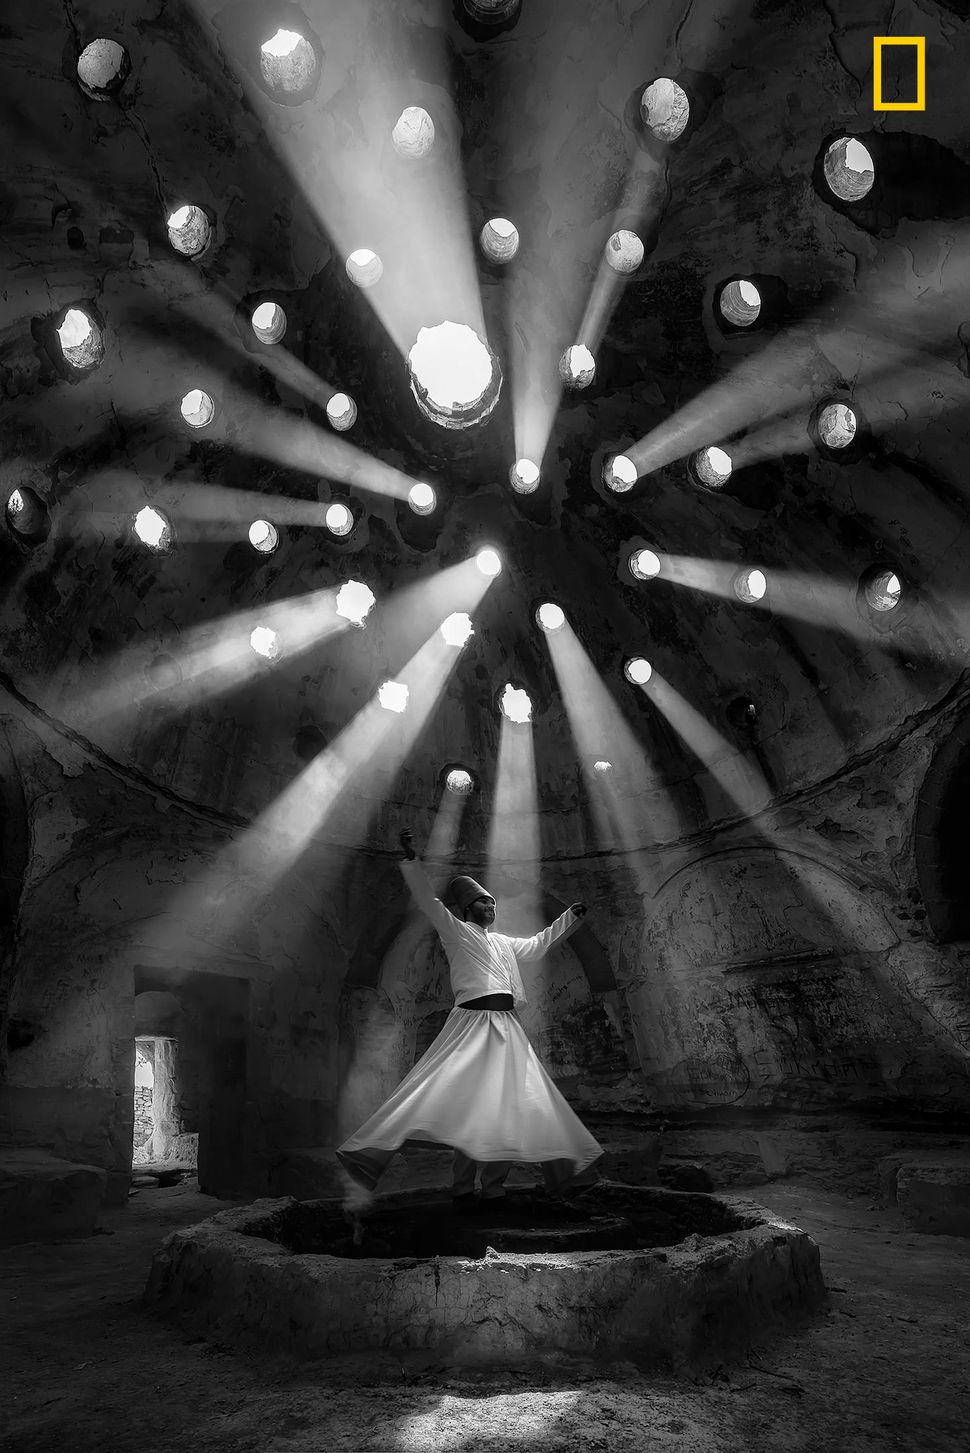 """Willing Dervish in an historical place of Sille Konya, Turkey. The 'dance' of the whirling dervishes is called sema and"